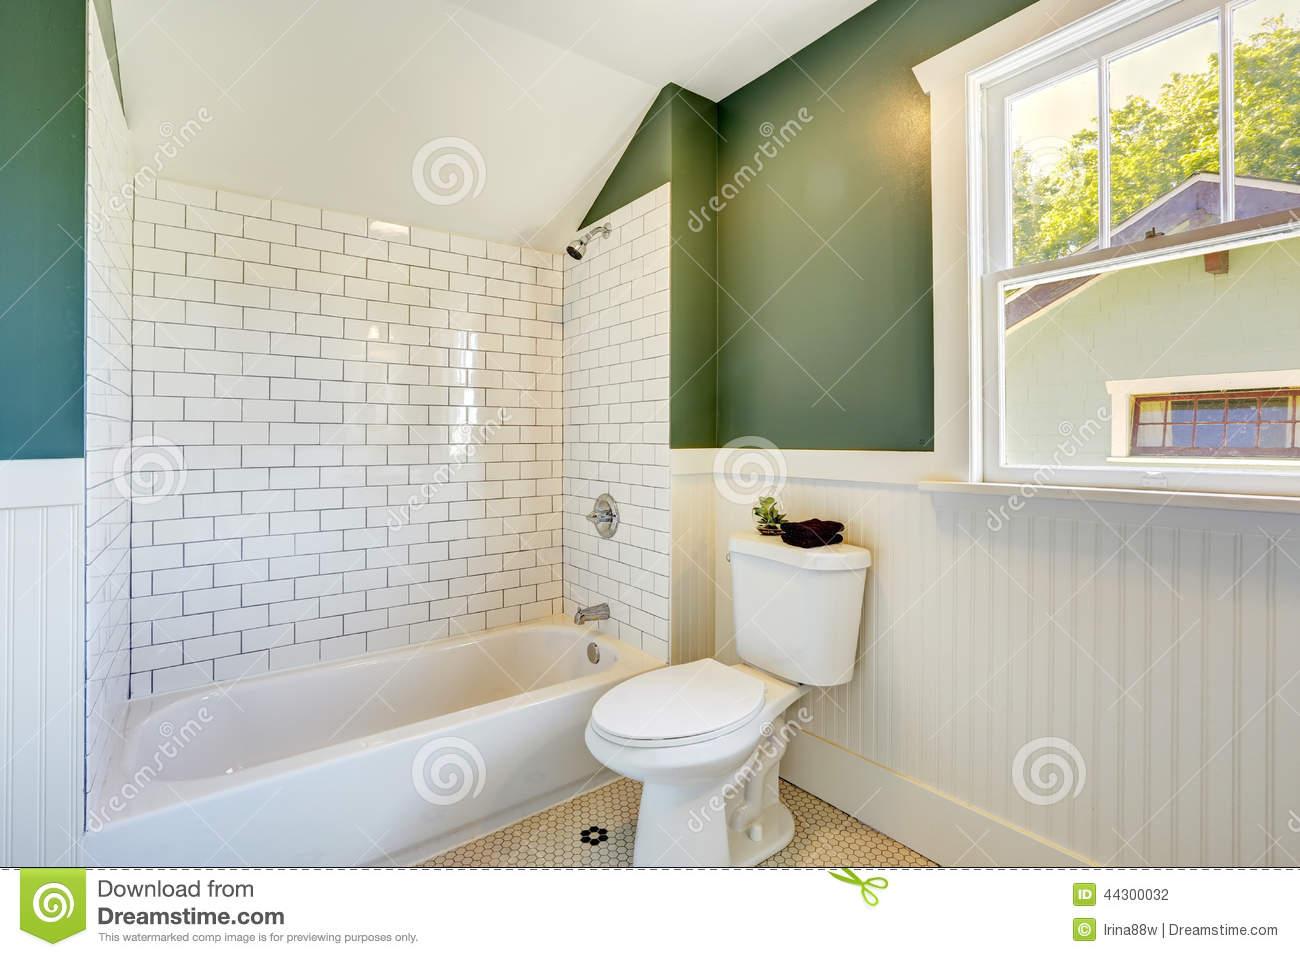 Bathroom Interior With White And Green Wall Trim Stock